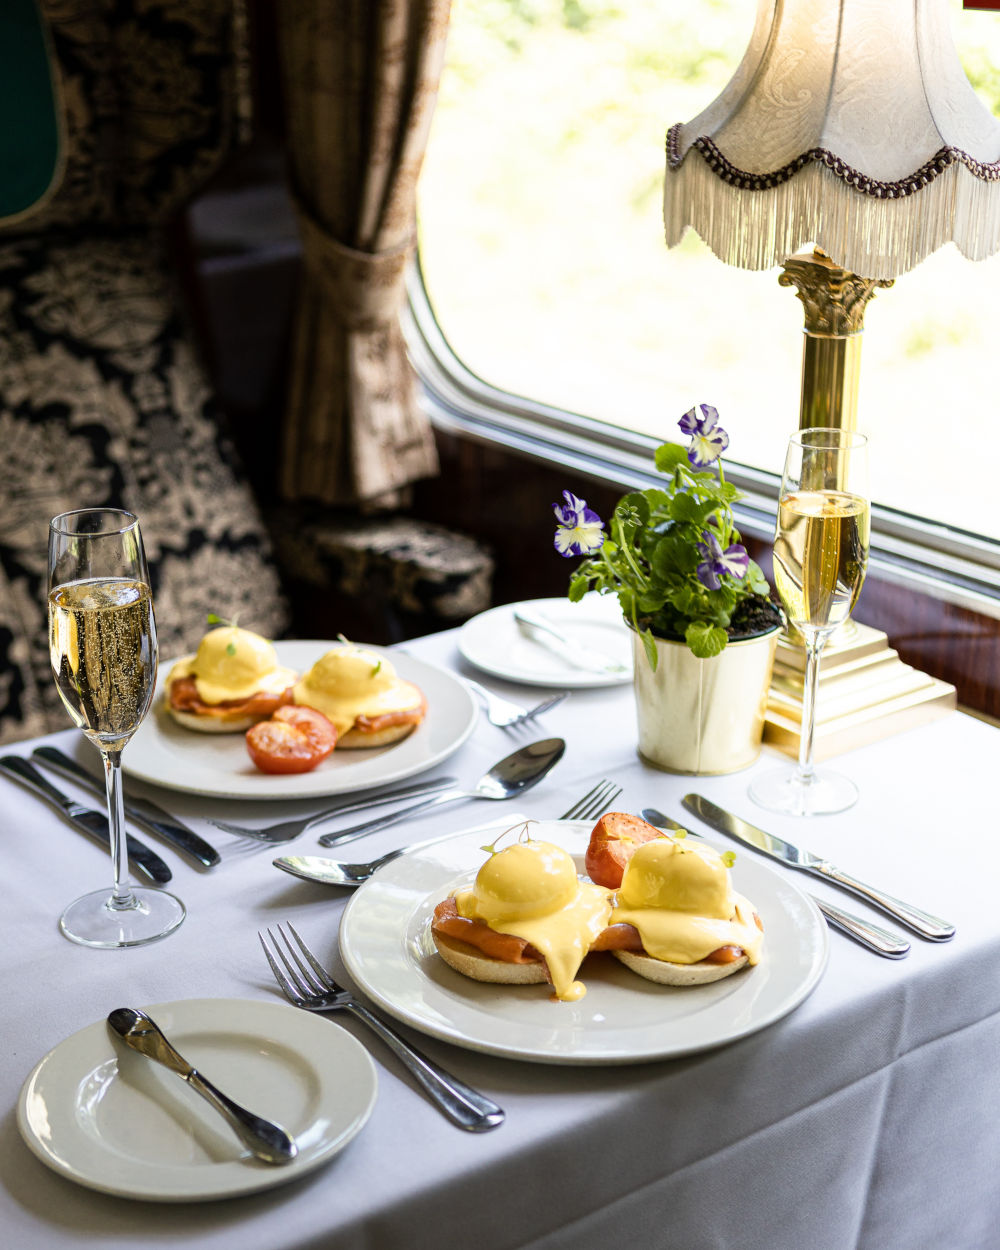 Eggs royale set up on the table